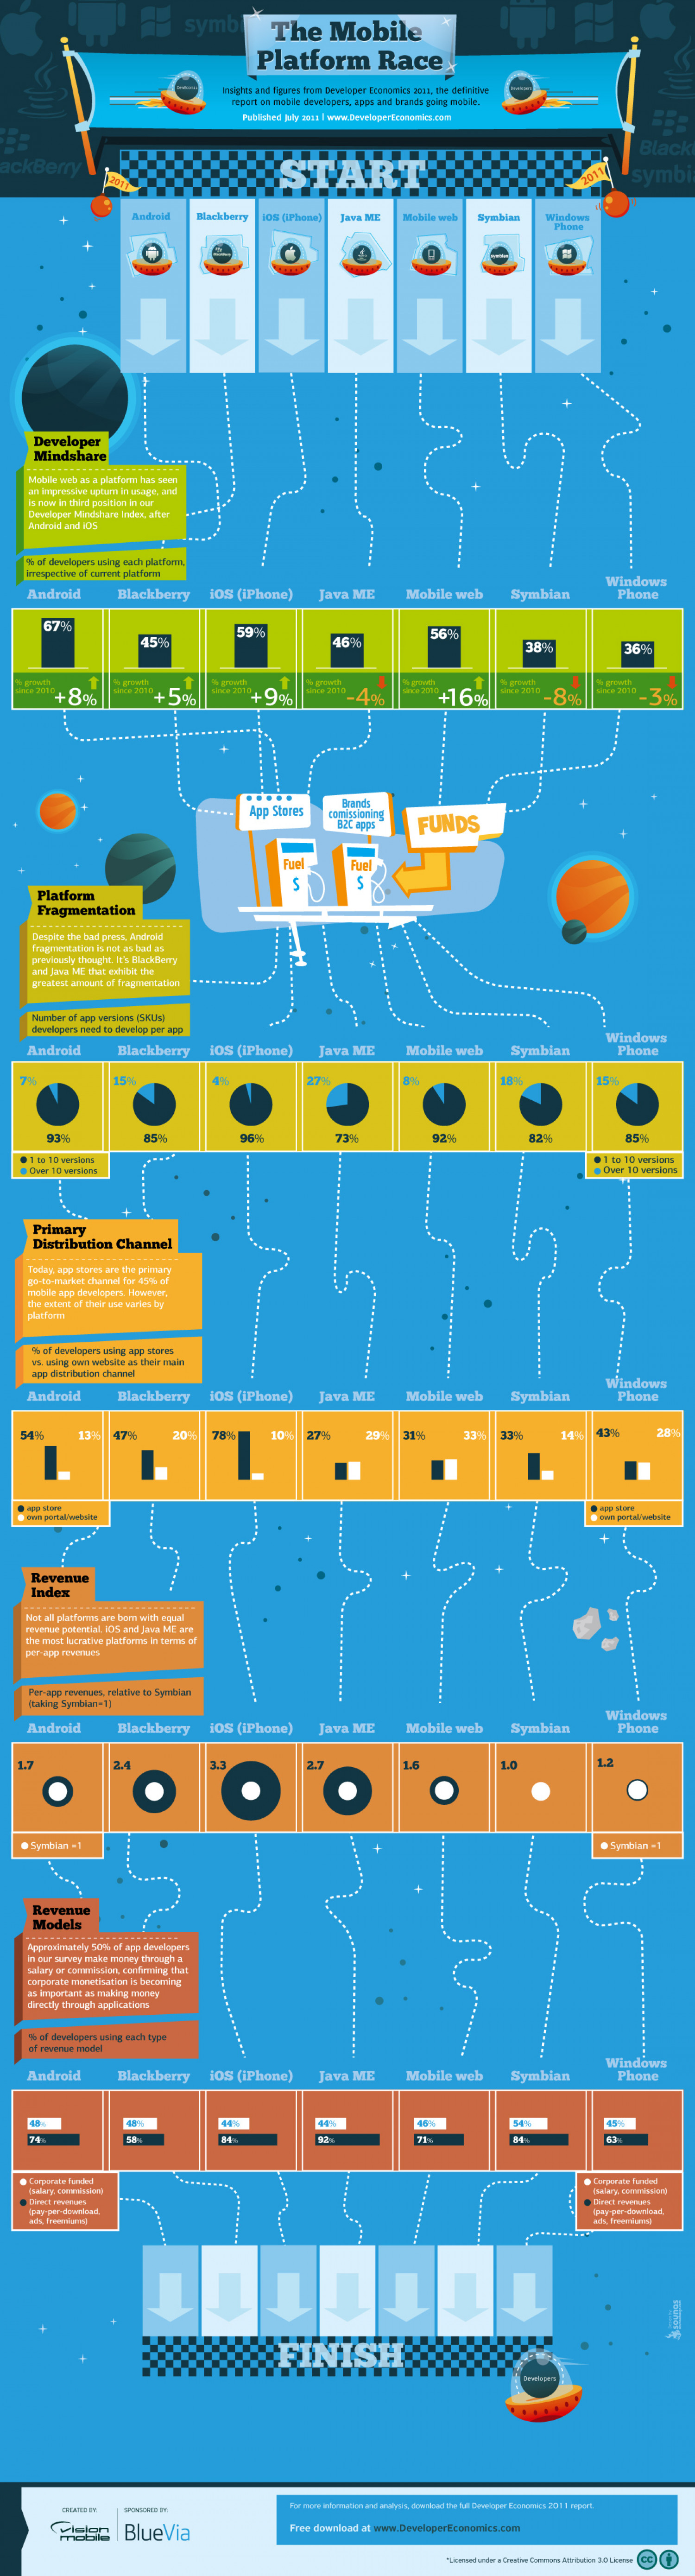 The Mobile Platform Race Infographic